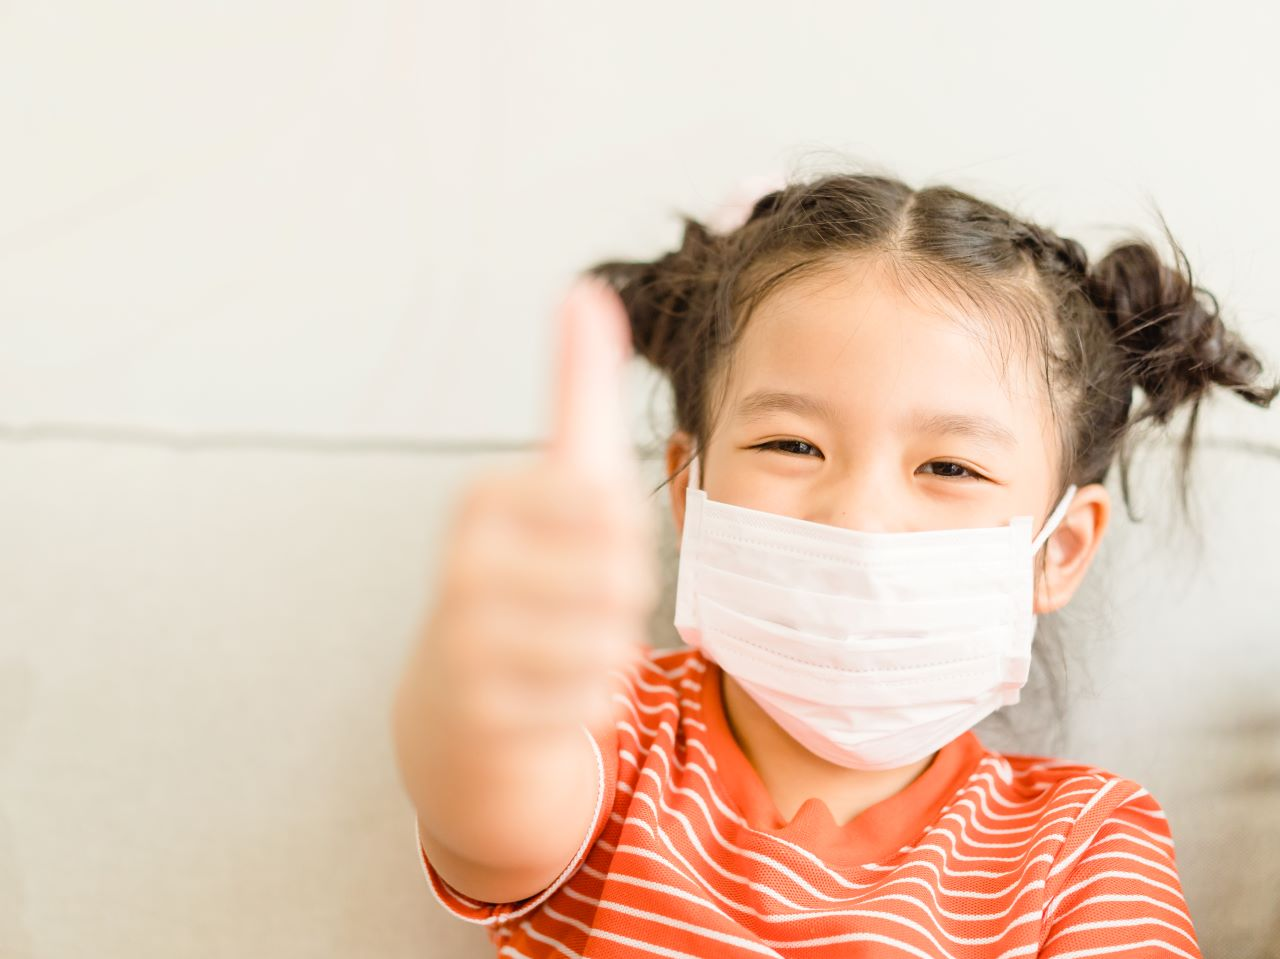 Little girl wearing a mask giving a thumbs up